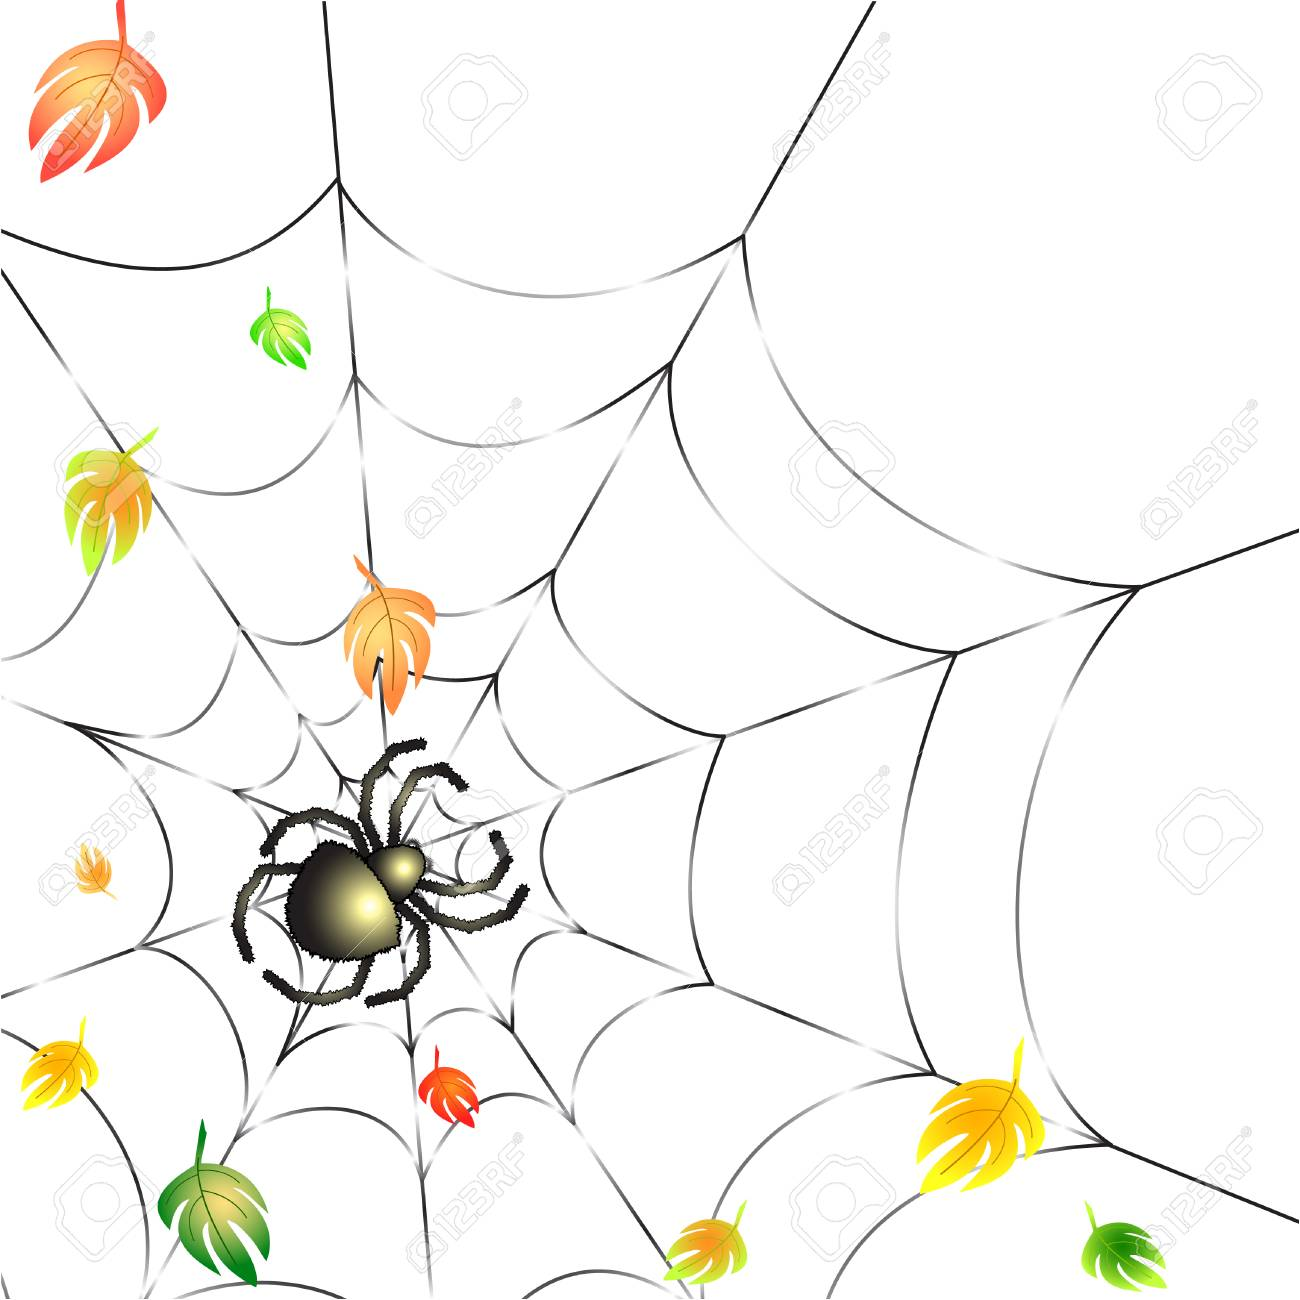 Background with Leafs and Spider on a Web in Autumn Stock Vector - 8254121